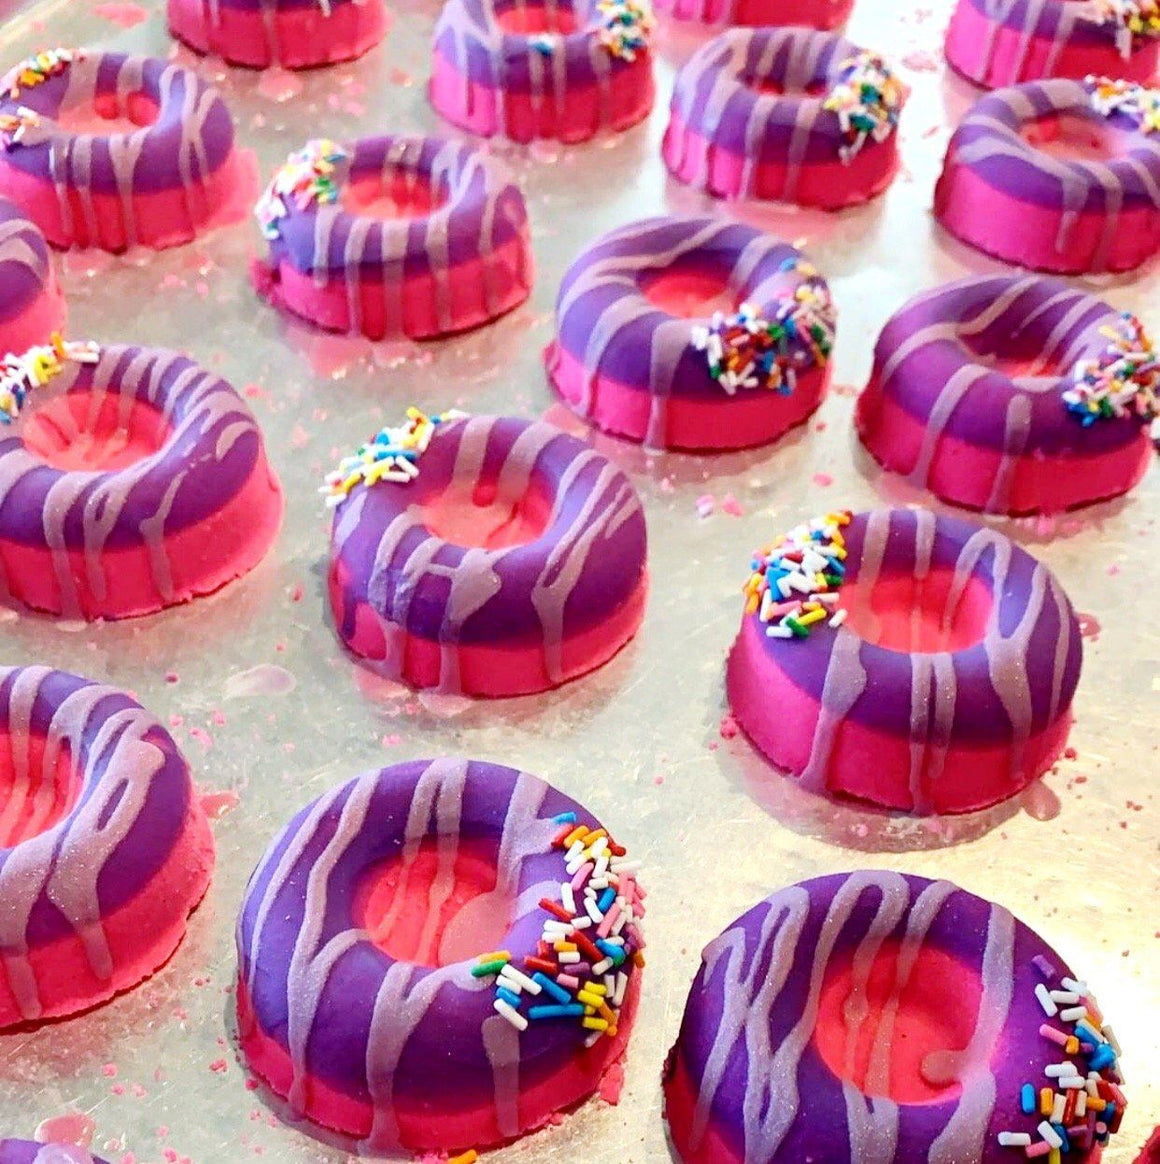 BATH FIZZY - MINI SPRINKLE DIPPED DONUT PINK